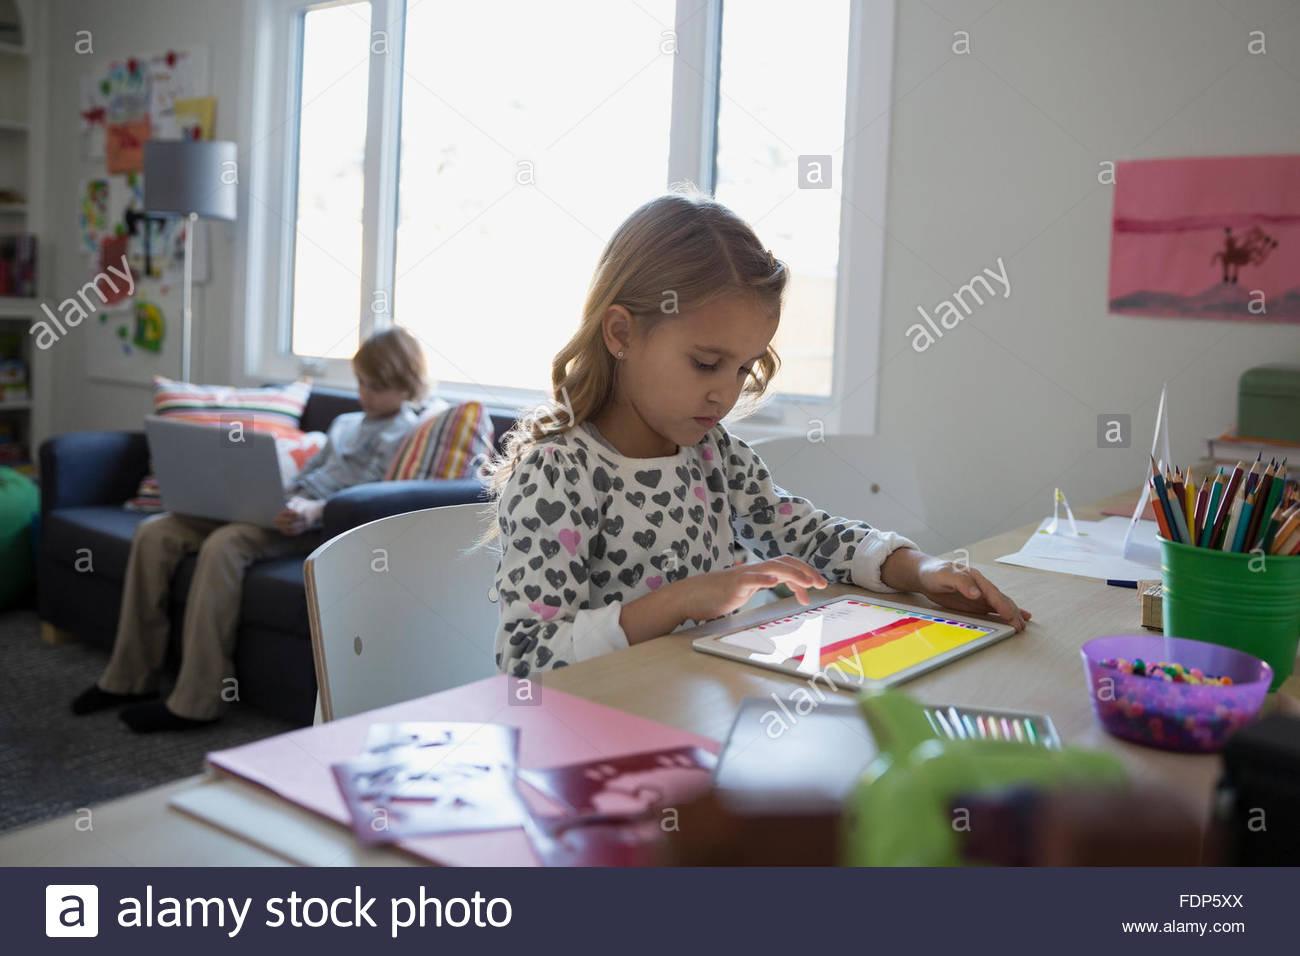 Girl using digital tablet at desk - Stock Image